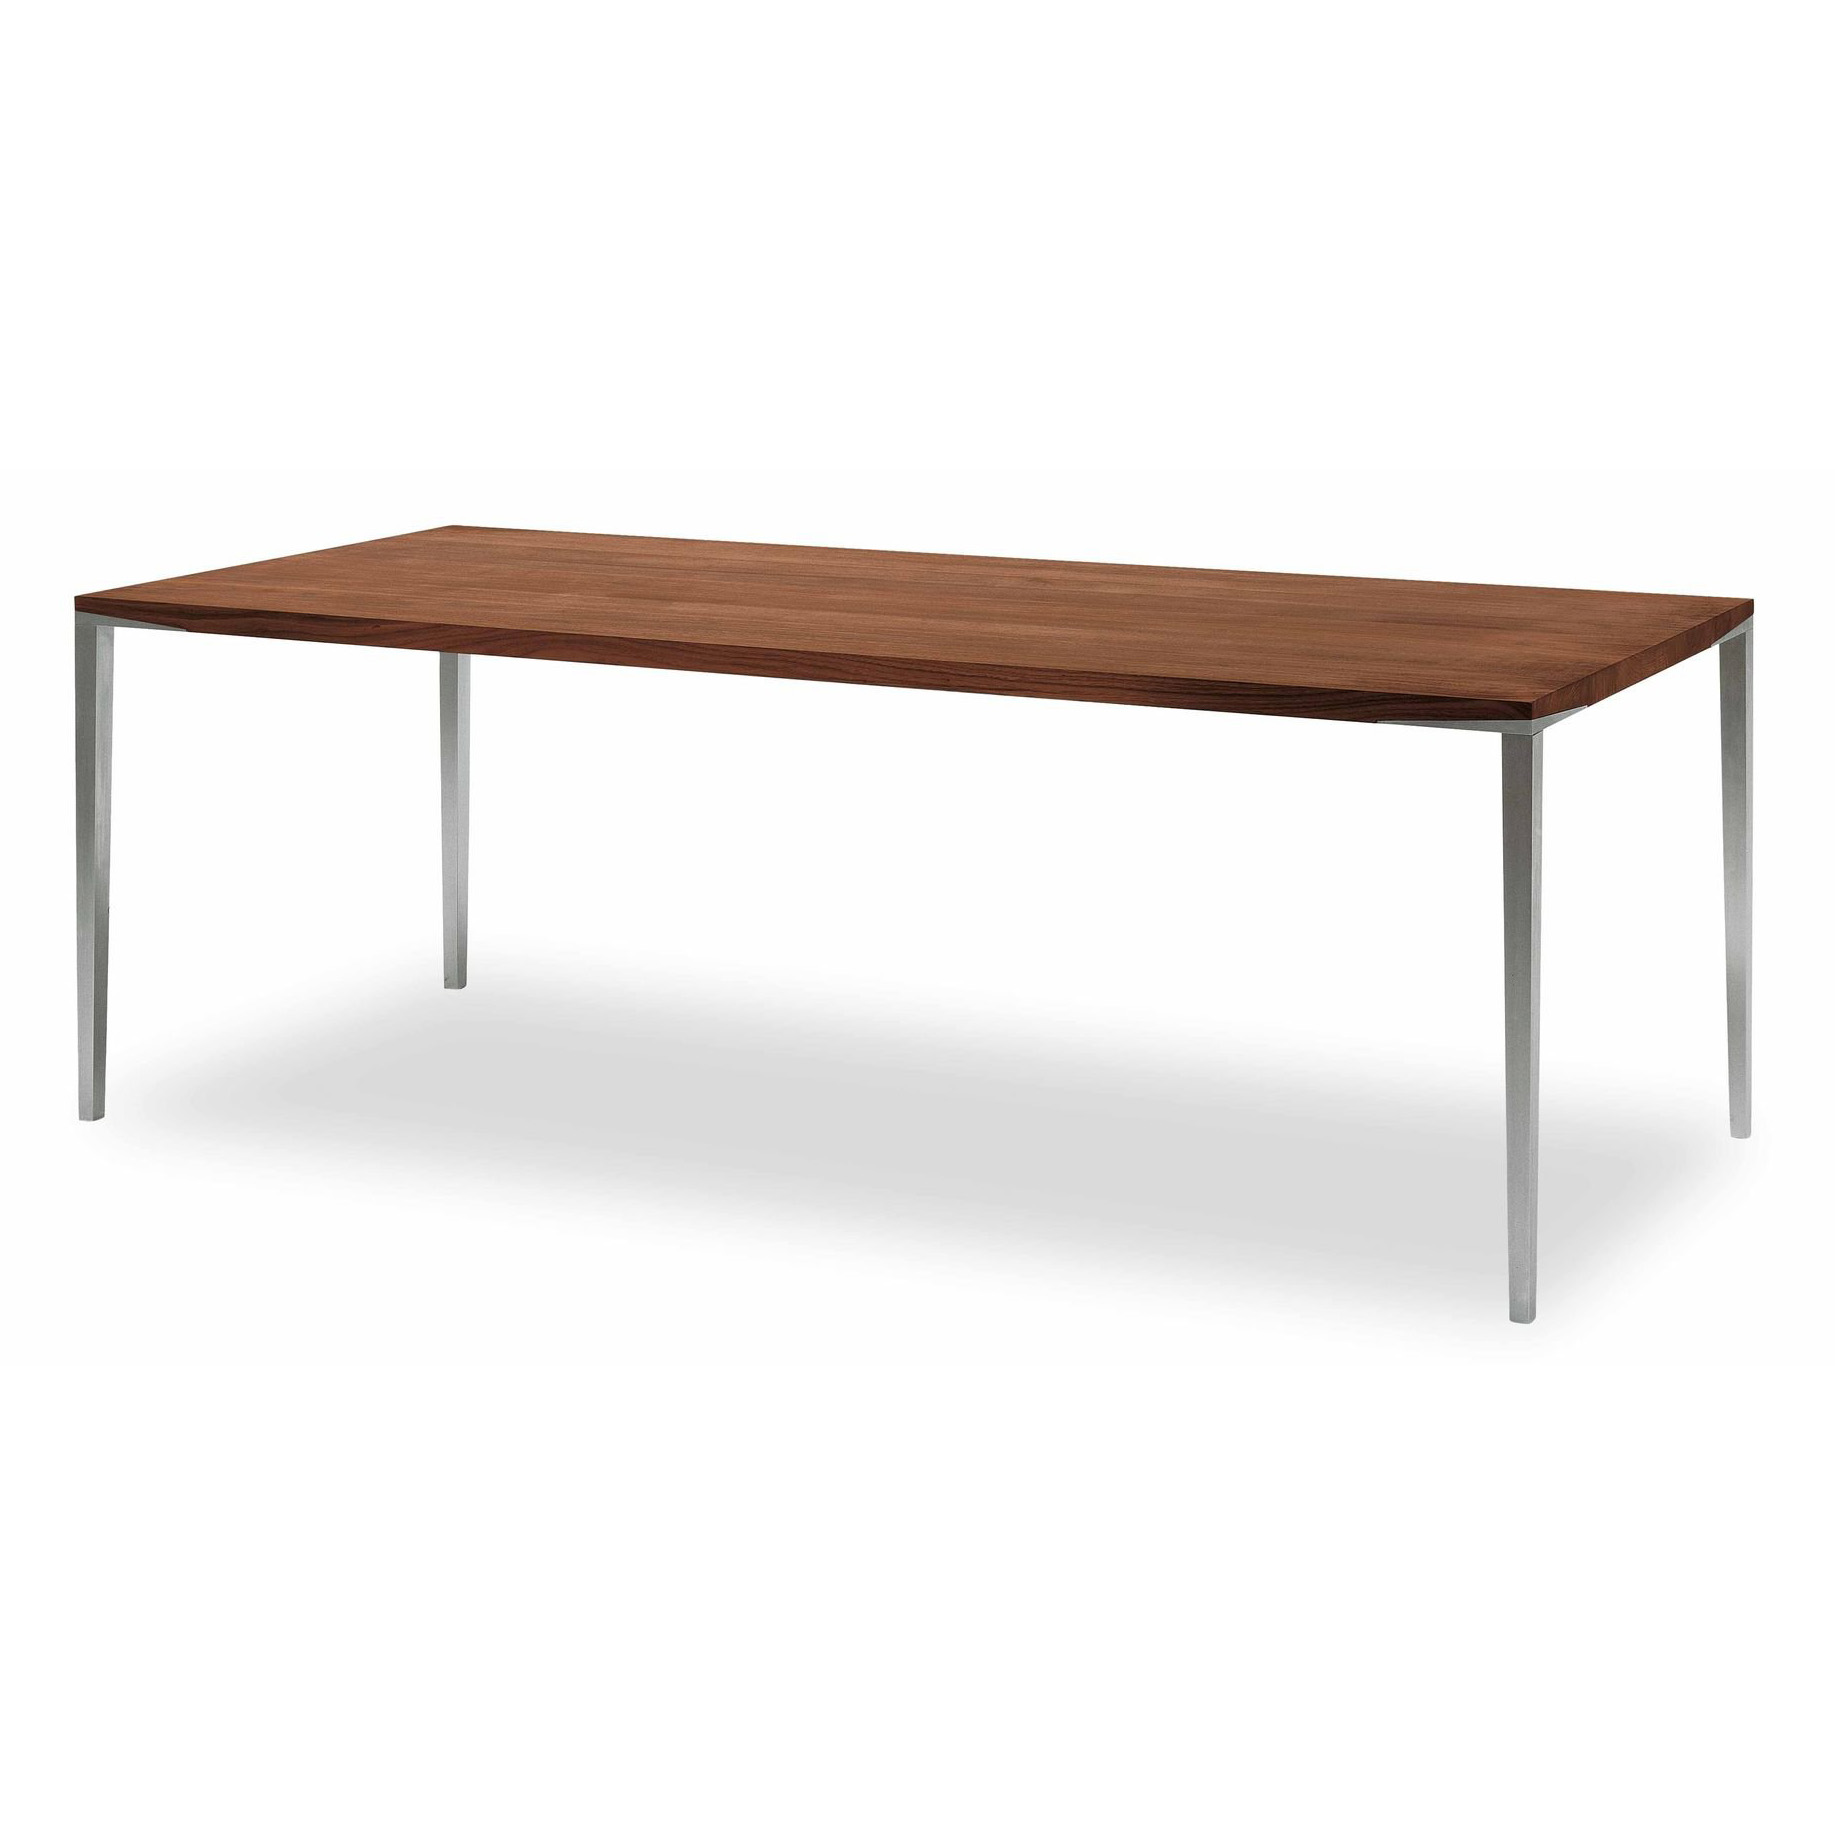 Alfredo dining table from Riva 1920